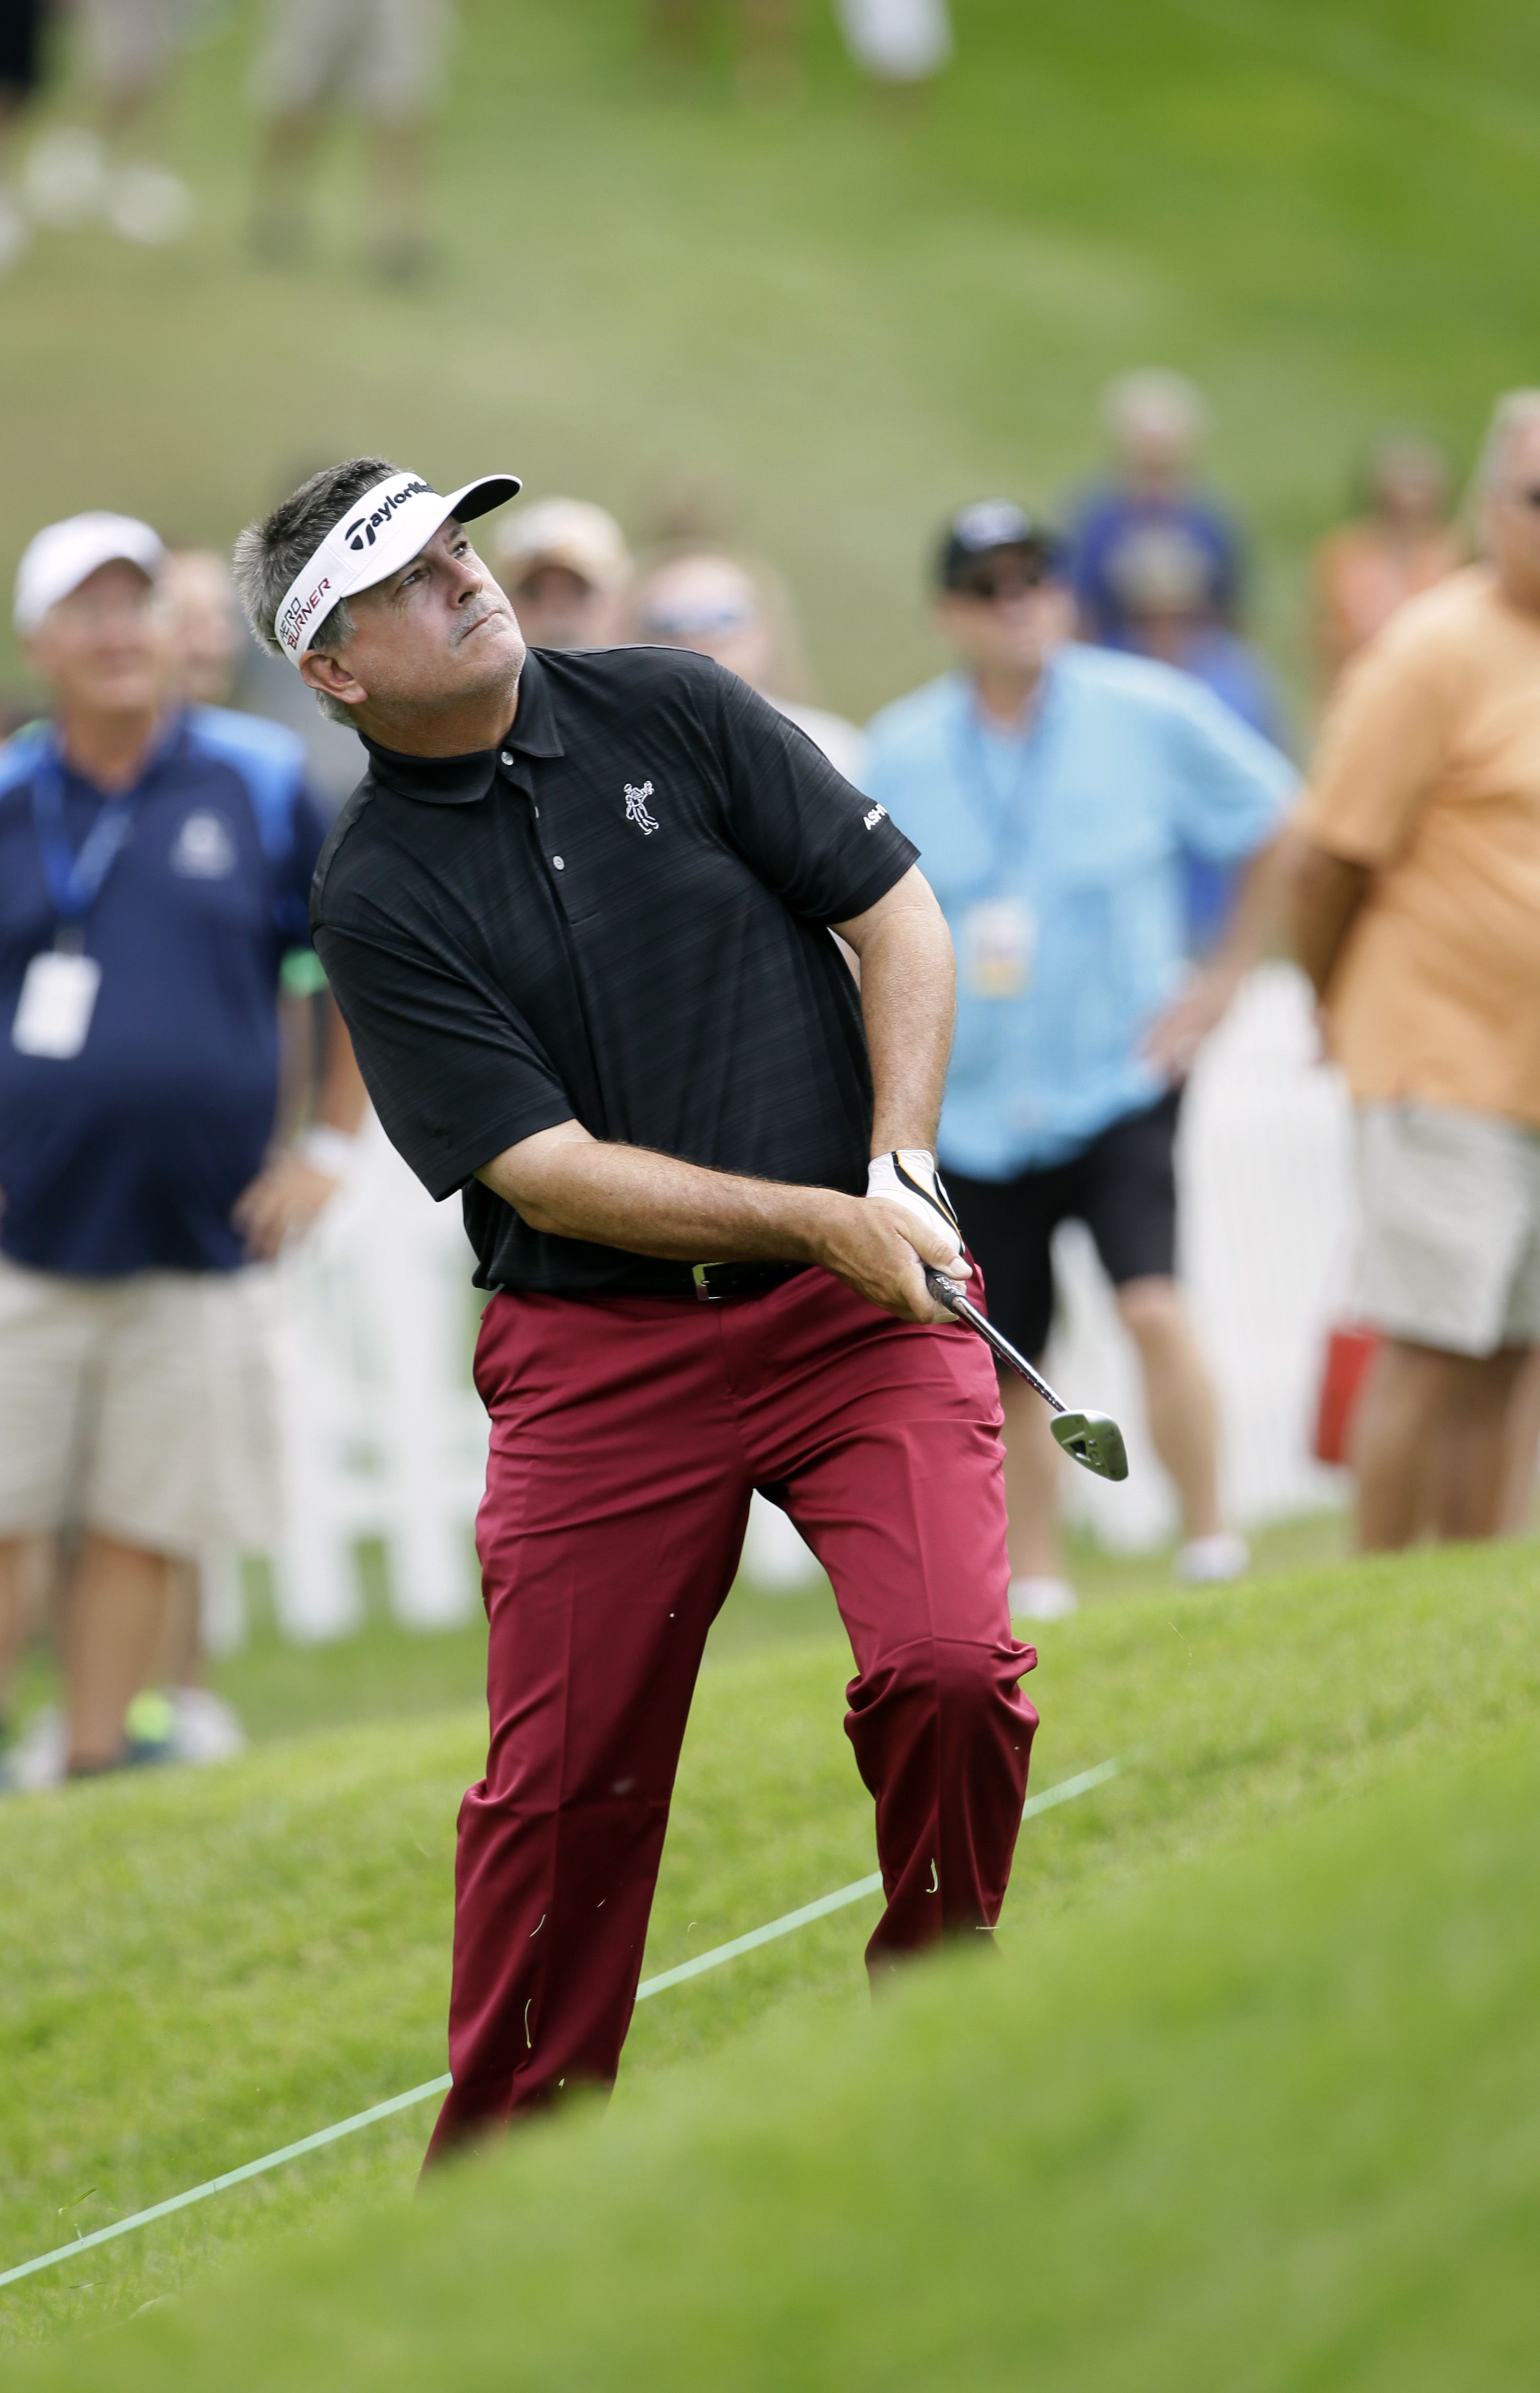 Paul Goydos chips to the first green during the final round of the Champions Tour's Principal Charity Classic golf tournament, Sunday, June 7, 2015, in Des Moines, Iowa. (AP Photo/Charlie Neibergall)